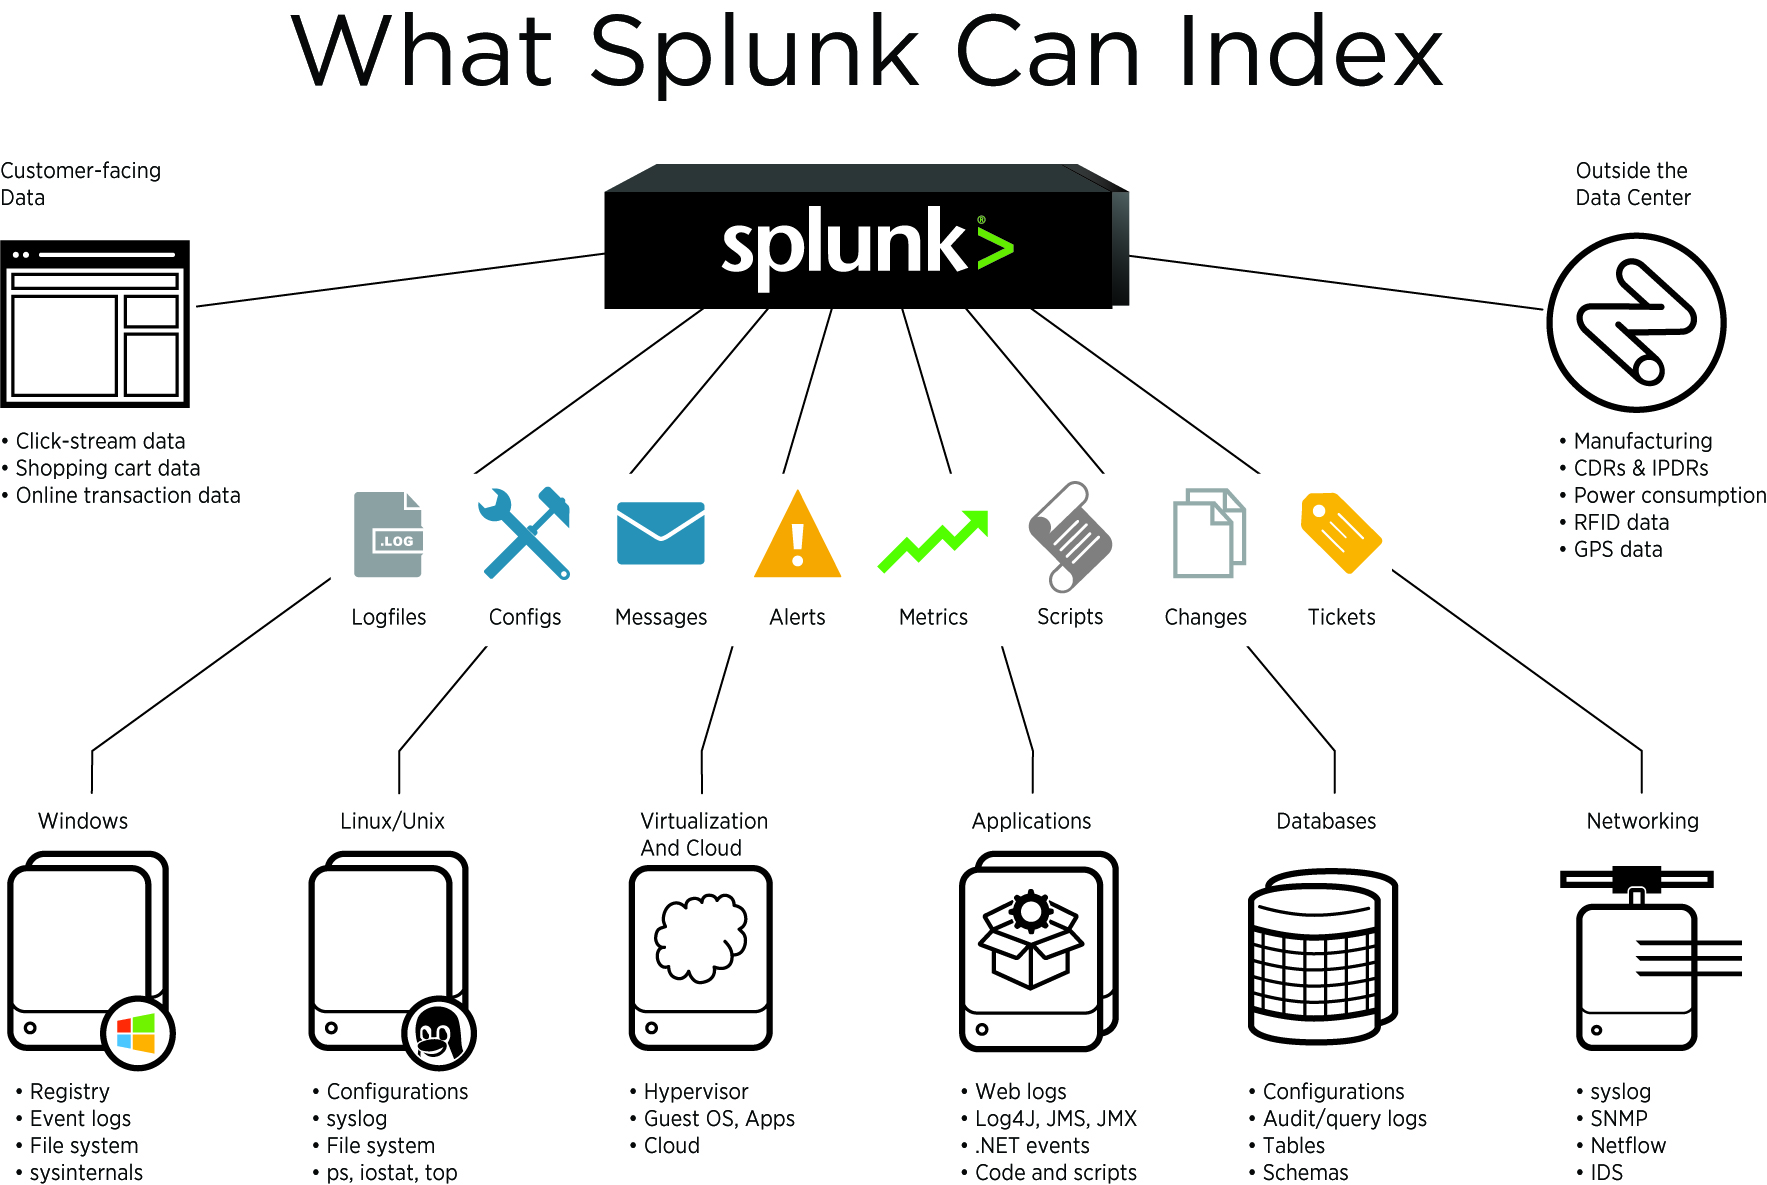 Diagram illustrating what Splunk can index: Customer-Facing Data, Windows, Linux/Unix, Virtualization and Cloud, Applications, Databases, Networking, Outside the Data Center